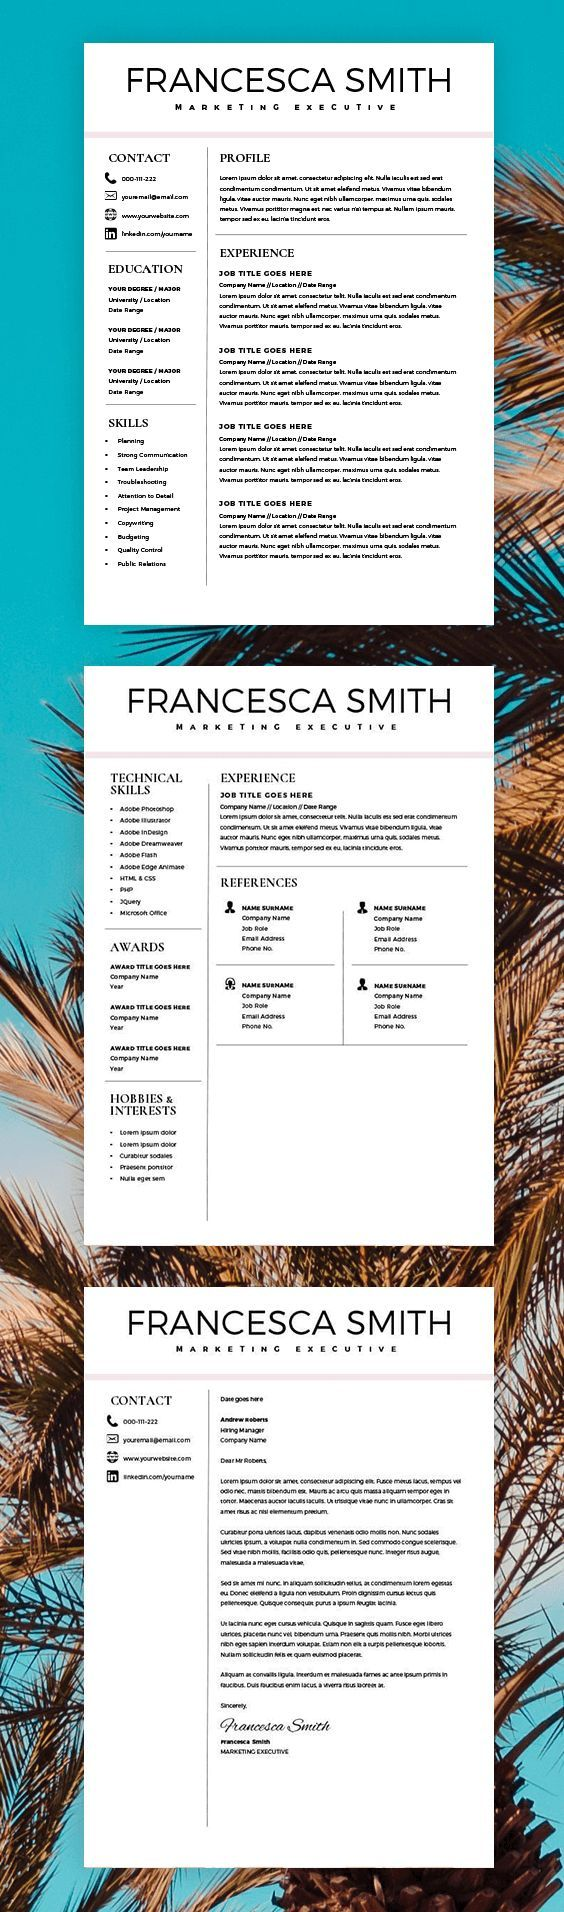 Feminine Resume - CV design - Resume Download - MS Word Resume for ...